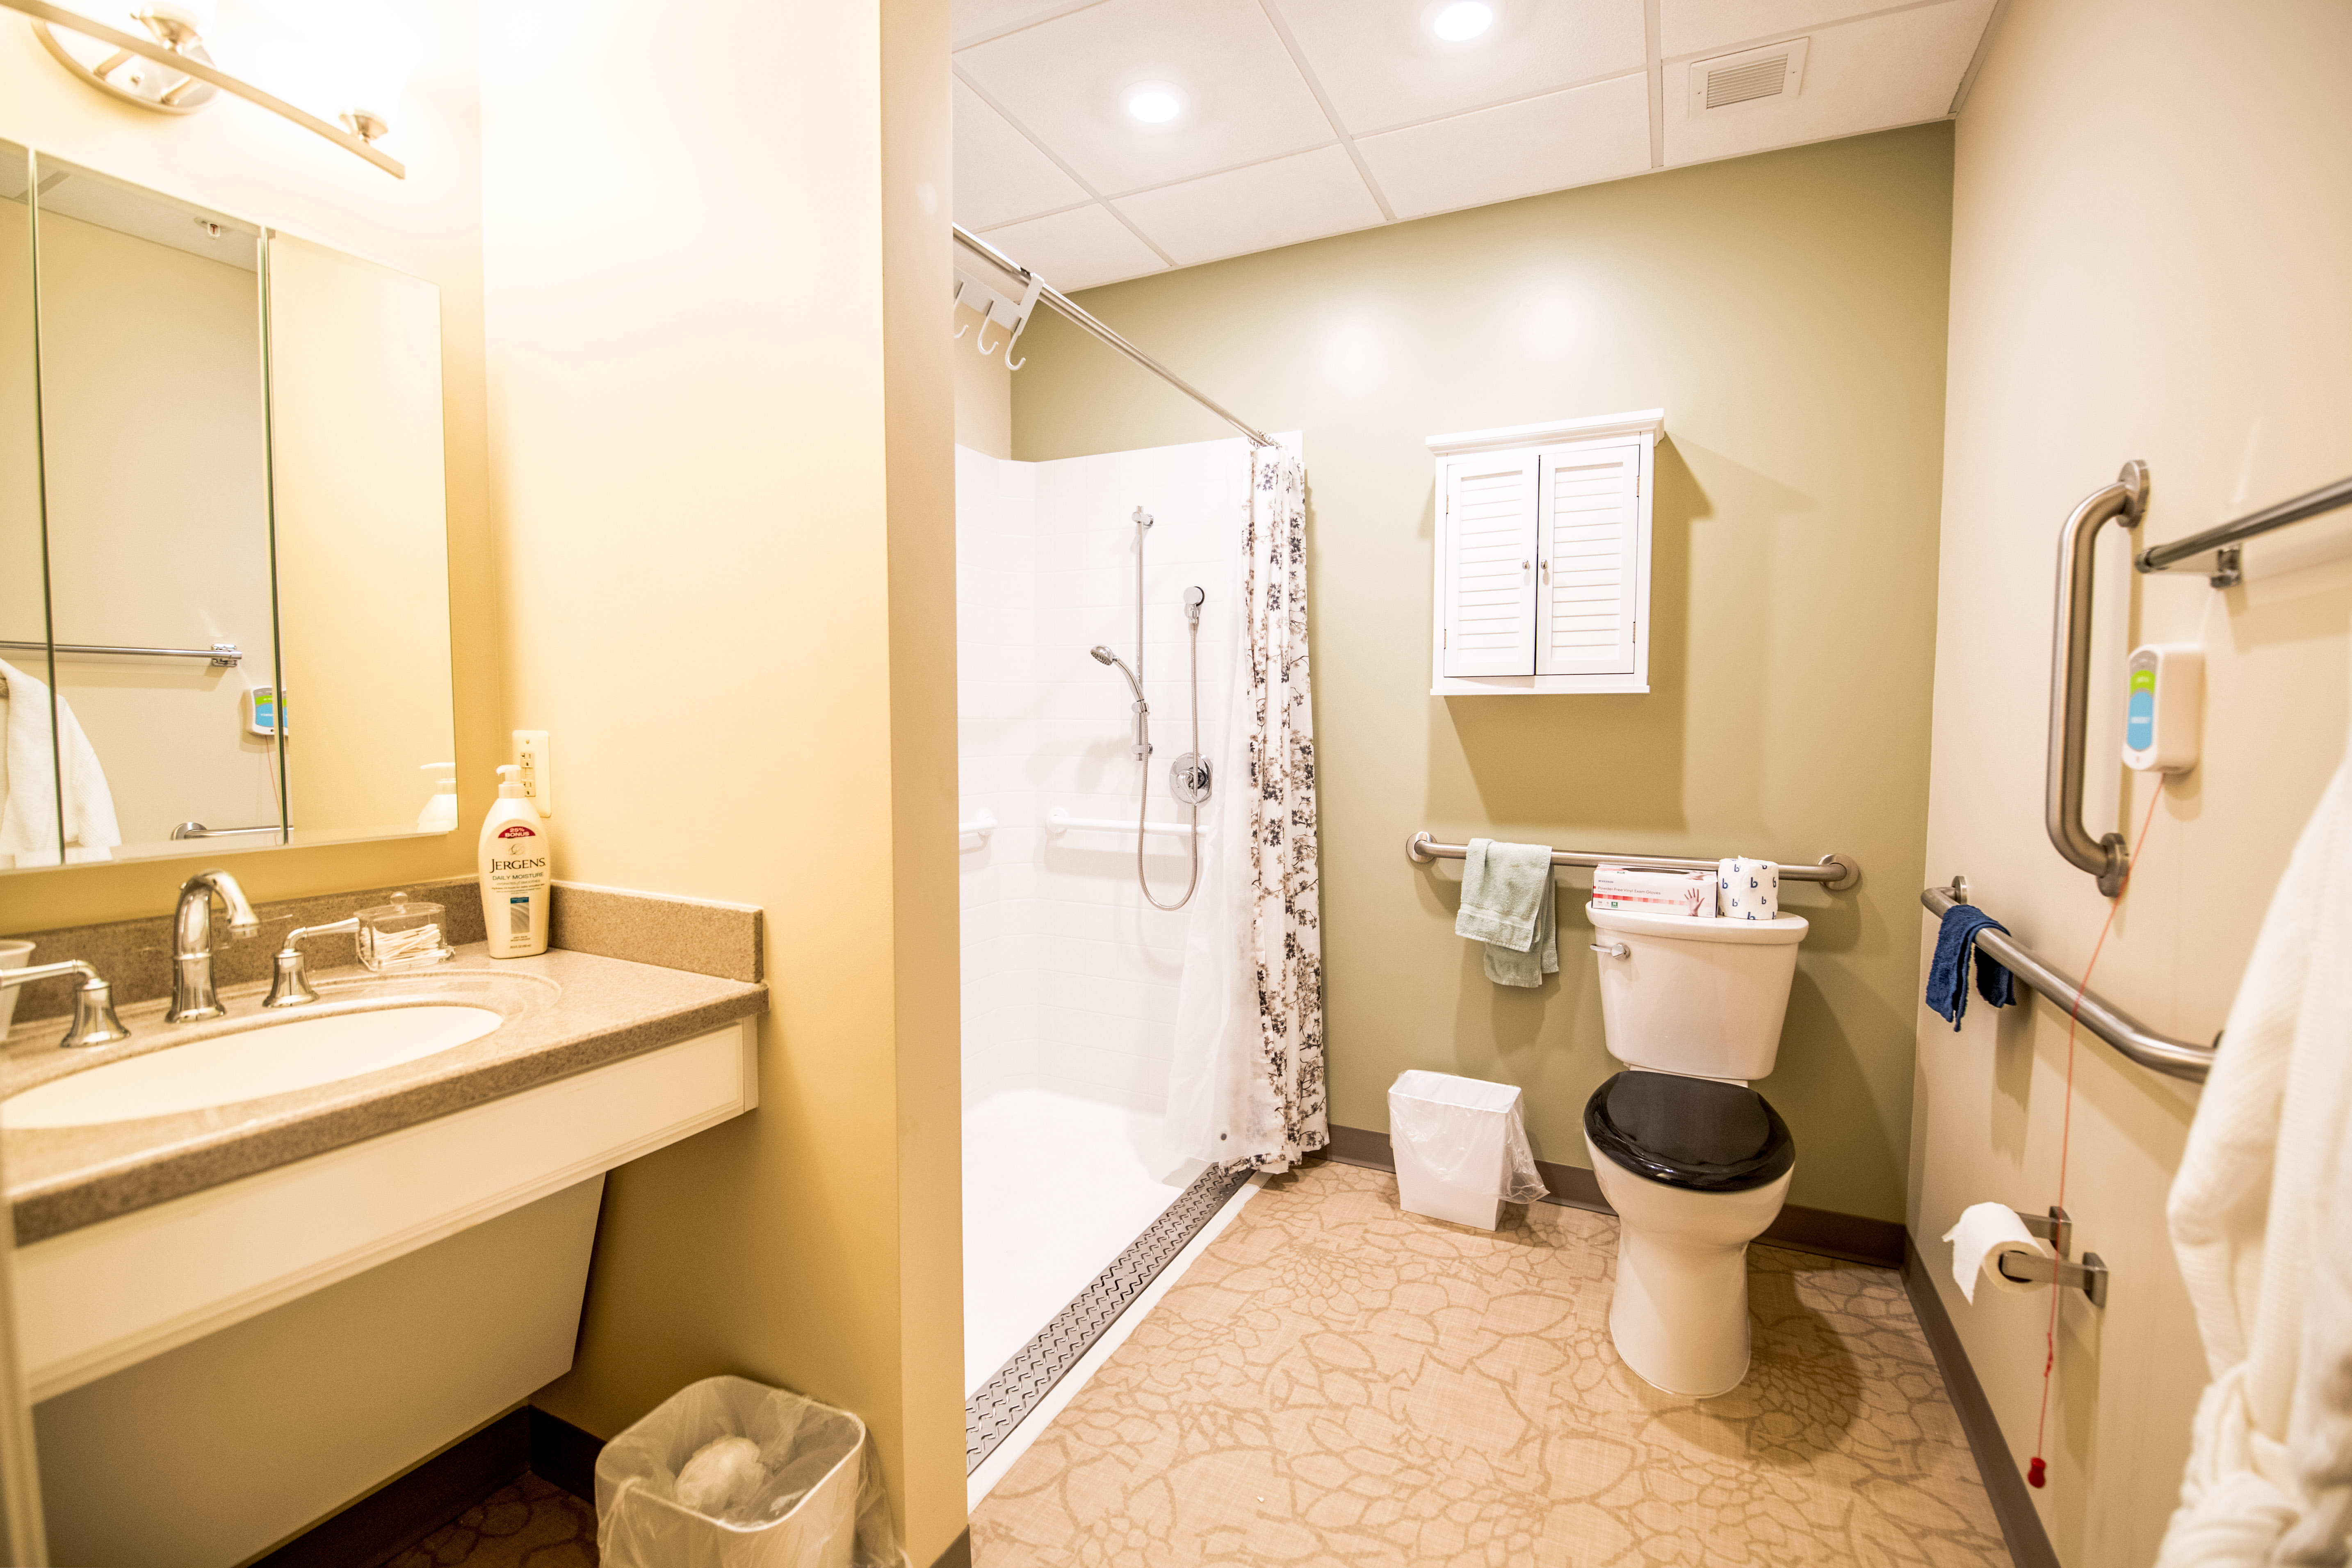 arbor-terrace-fairfax-bathroom-3